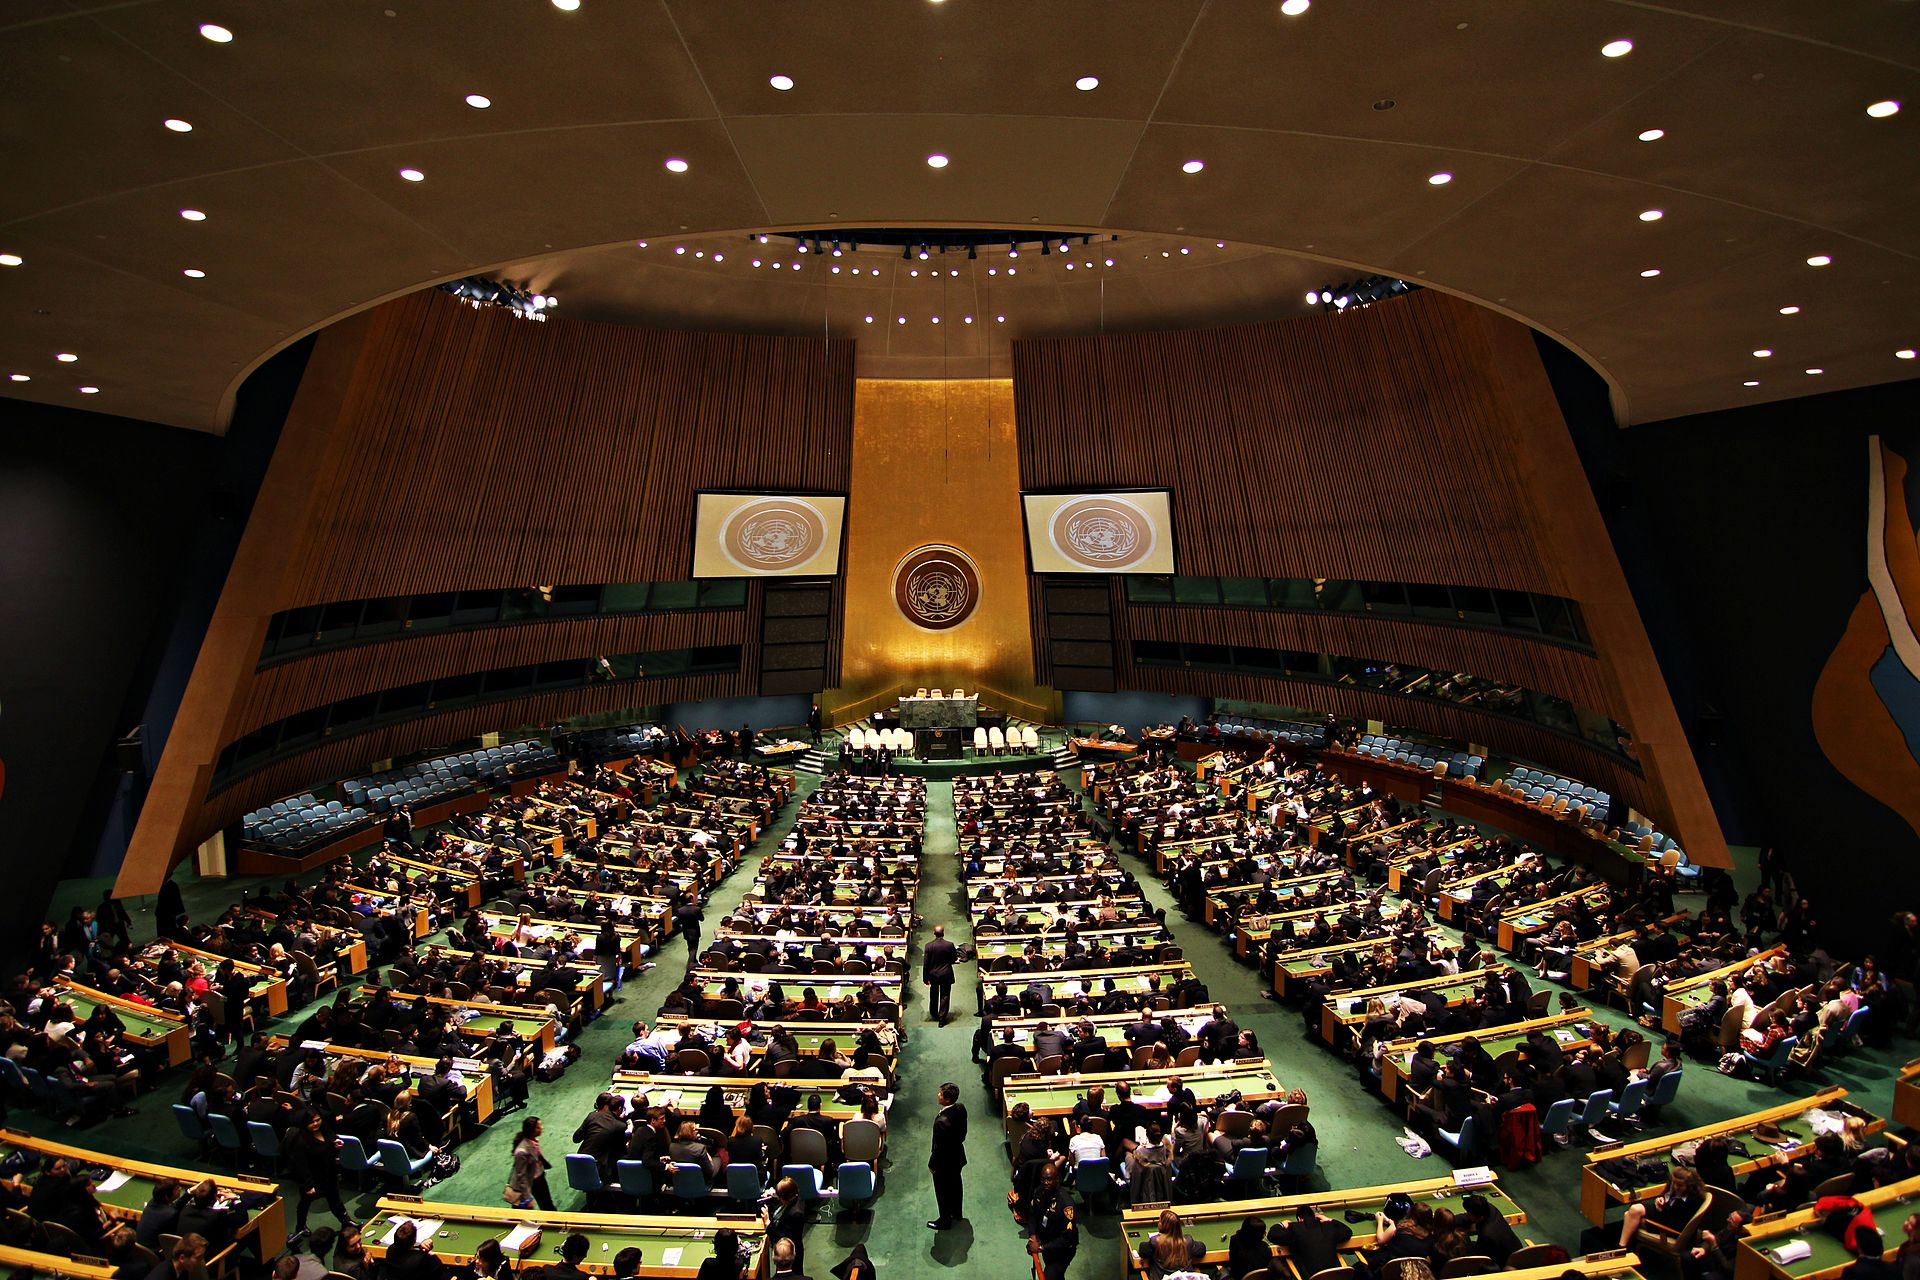 United Nations General Assembly Hall. Photo: Basil D. Soufi